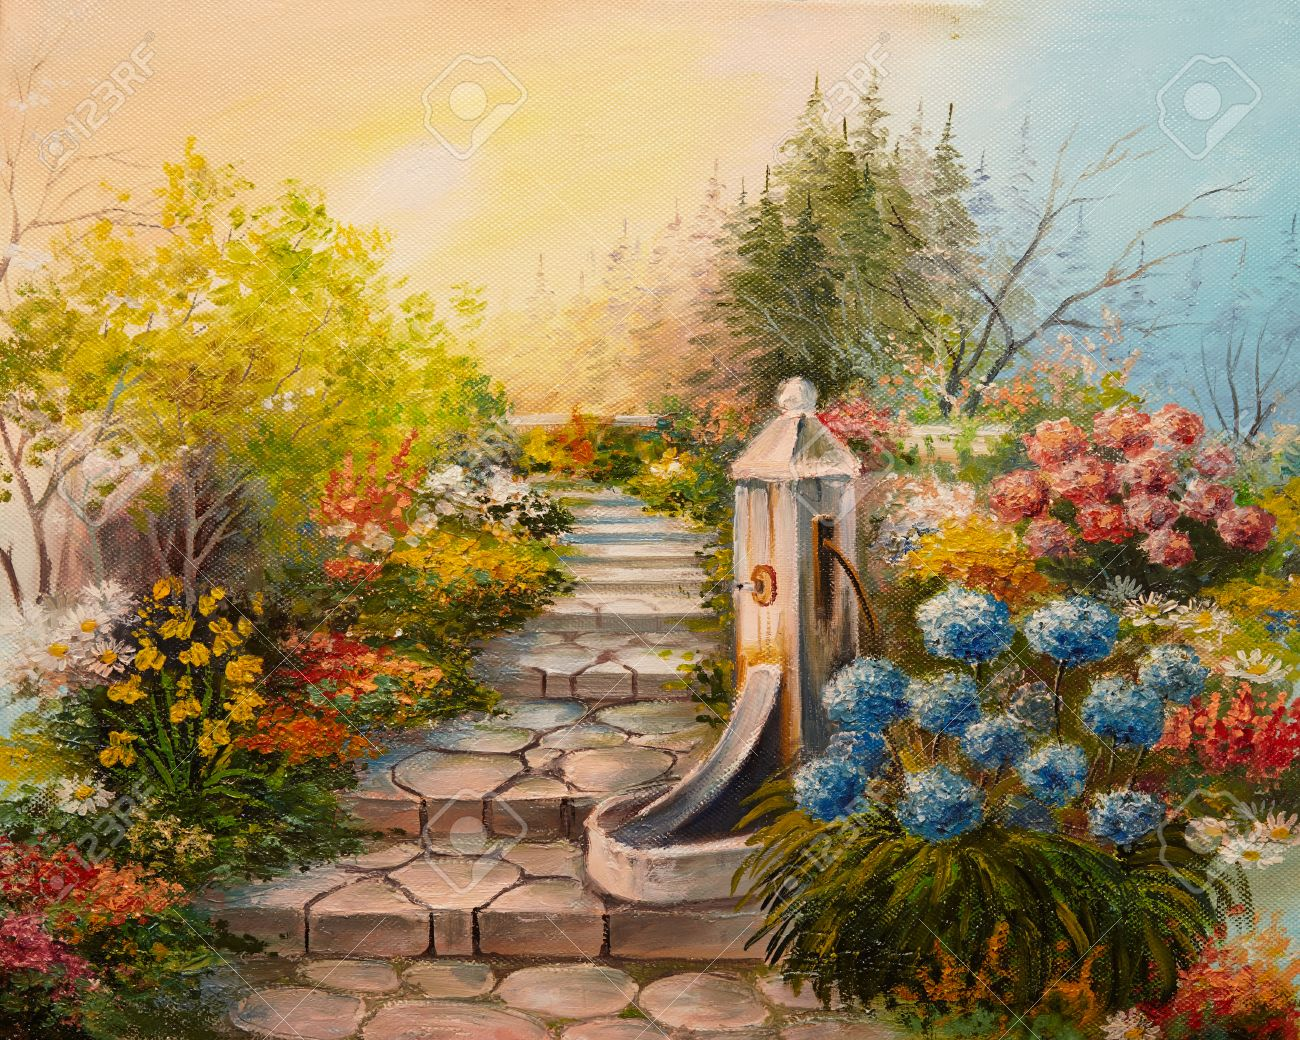 Flower Garden Paintings. Oil Painting Stone Stairs In The Forest Stock  Photo 38223007 Flower Garden